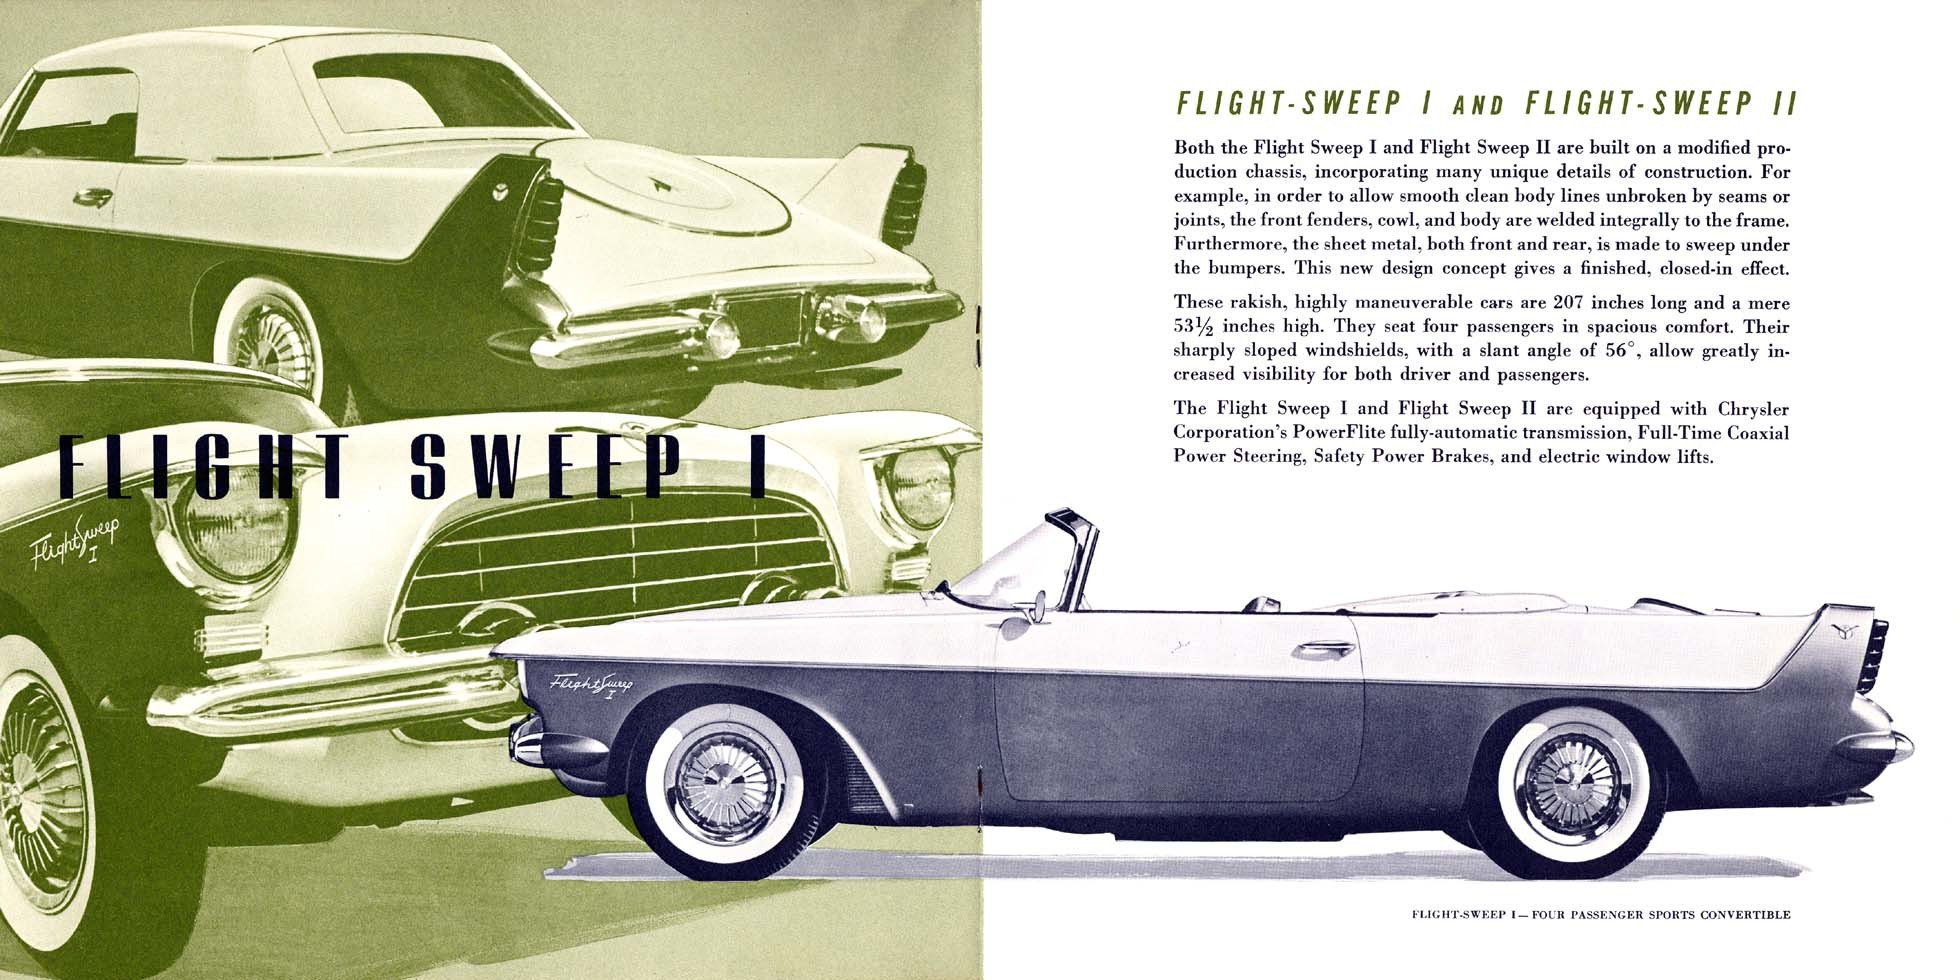 1955_Ghia_Chrysler_Flight_Sweep-I_03